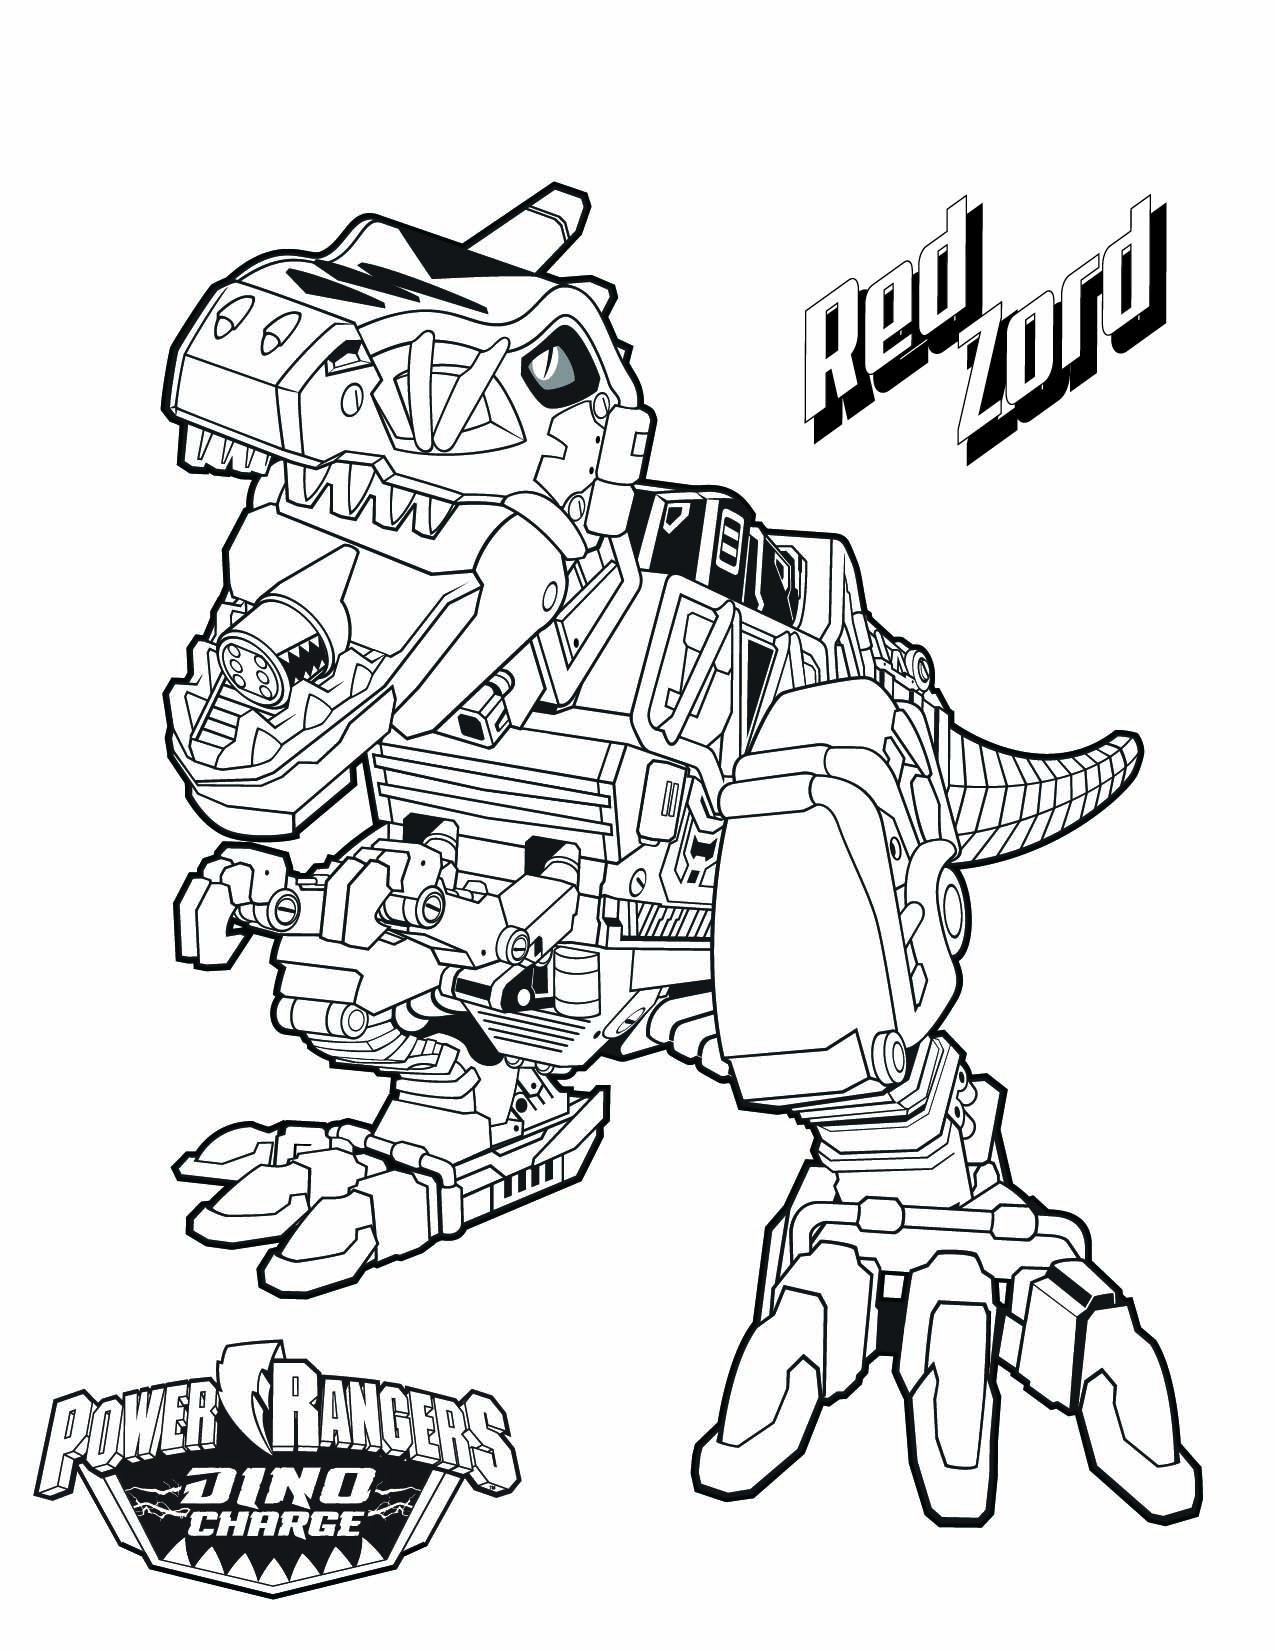 New York Rangers Coloring Pages At Getcolorings